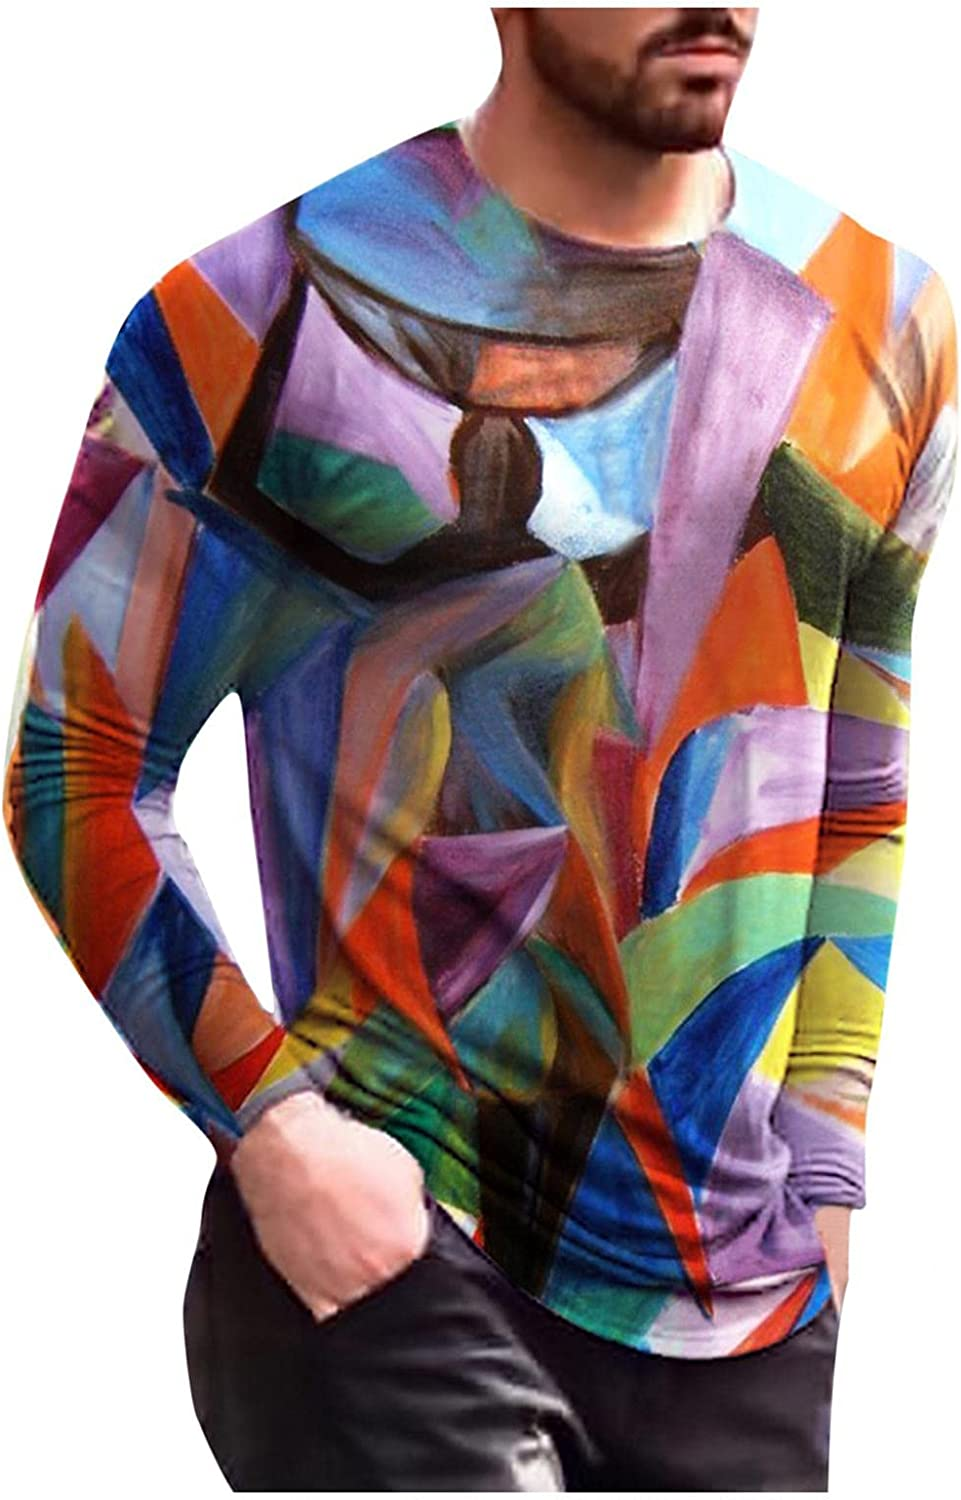 Aayomet T-Shirts Abstract Graphic Long Sleeve Round Neck Sweatshirts Casual Workout Sport Tee Shirts Blouses Tops fot Men